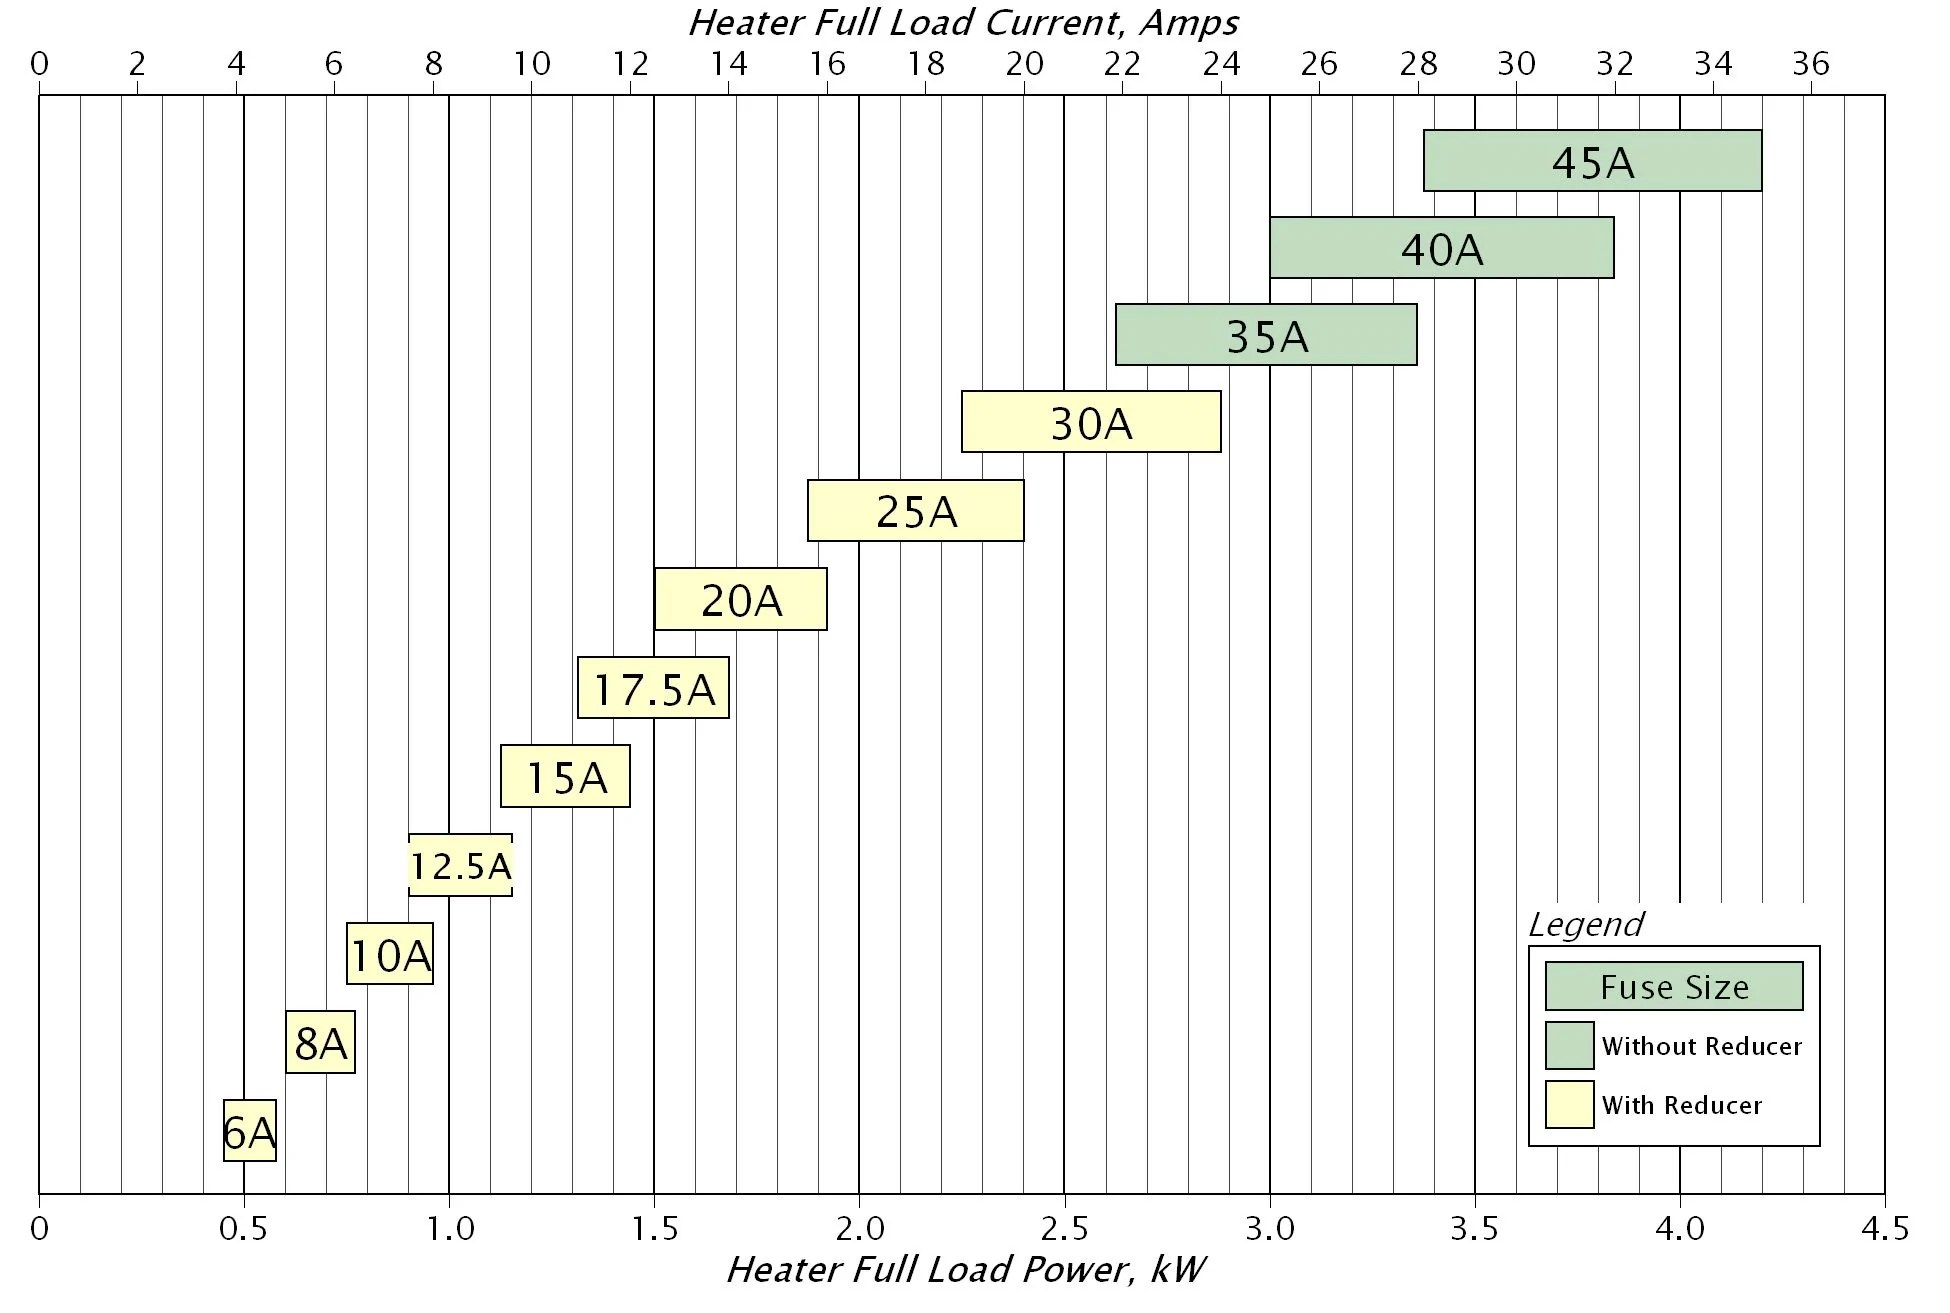 hight resolution of fuse sizing diagram ifpa 120 1p 35a